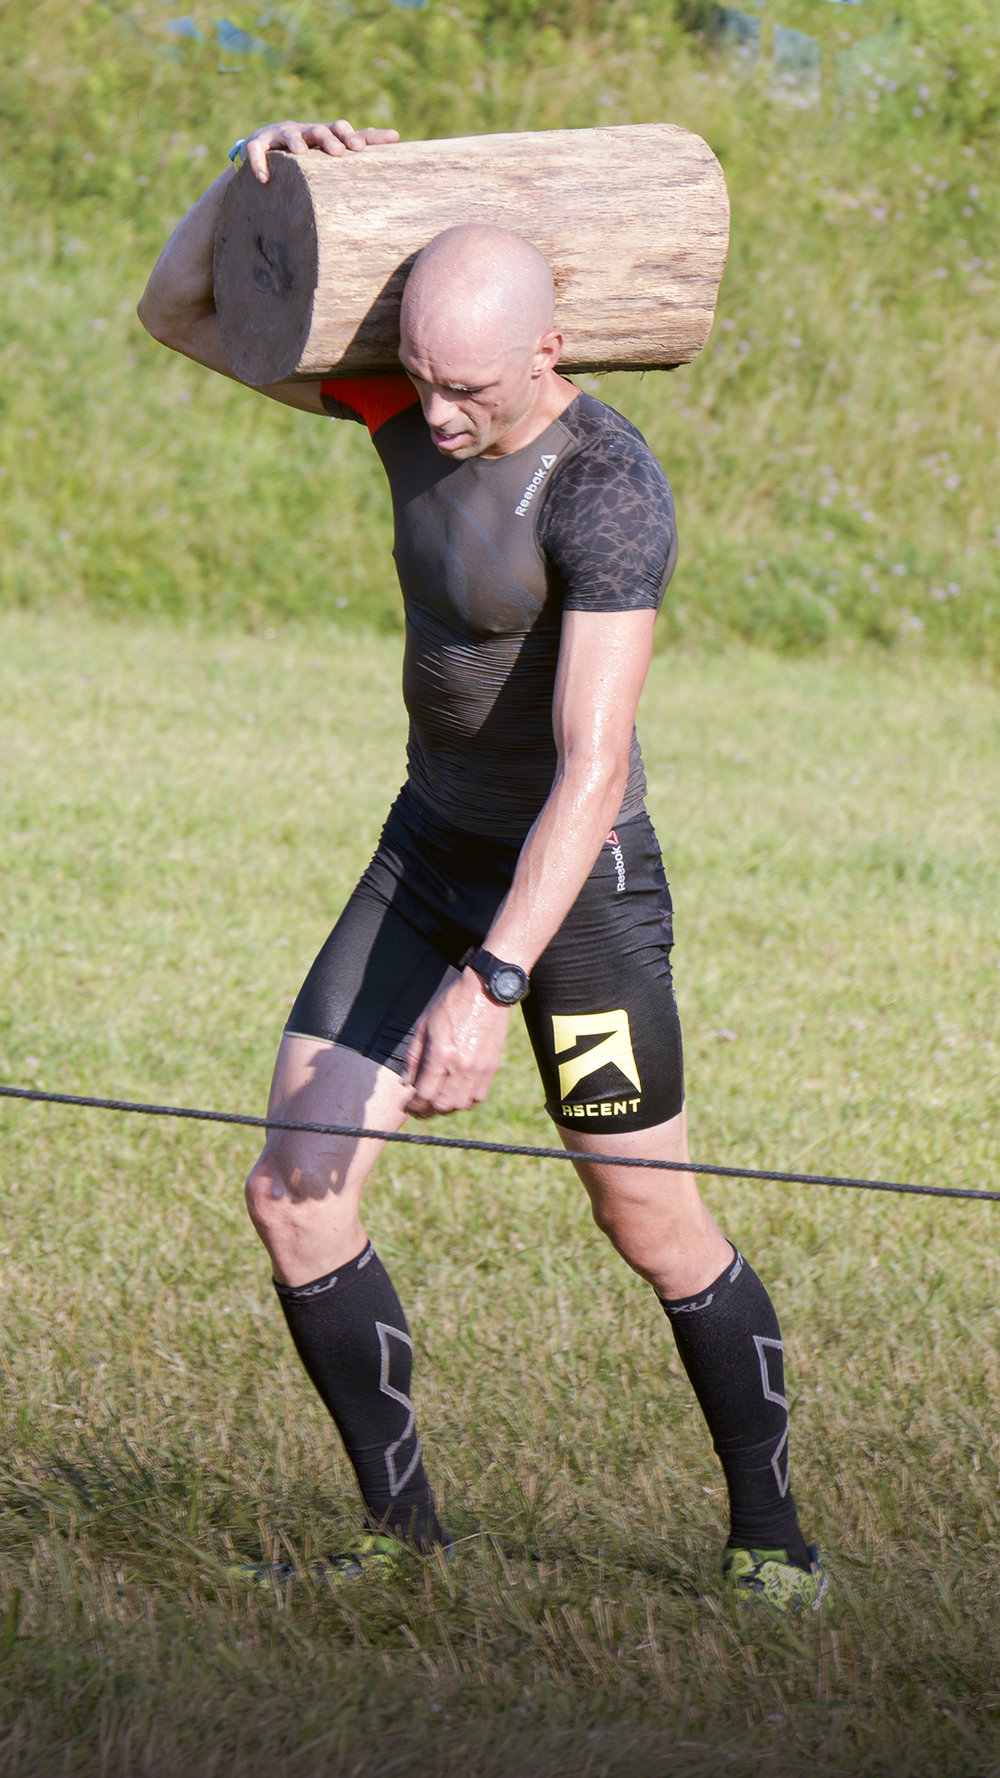 OCR Athlete and US Army Member Robert Killian